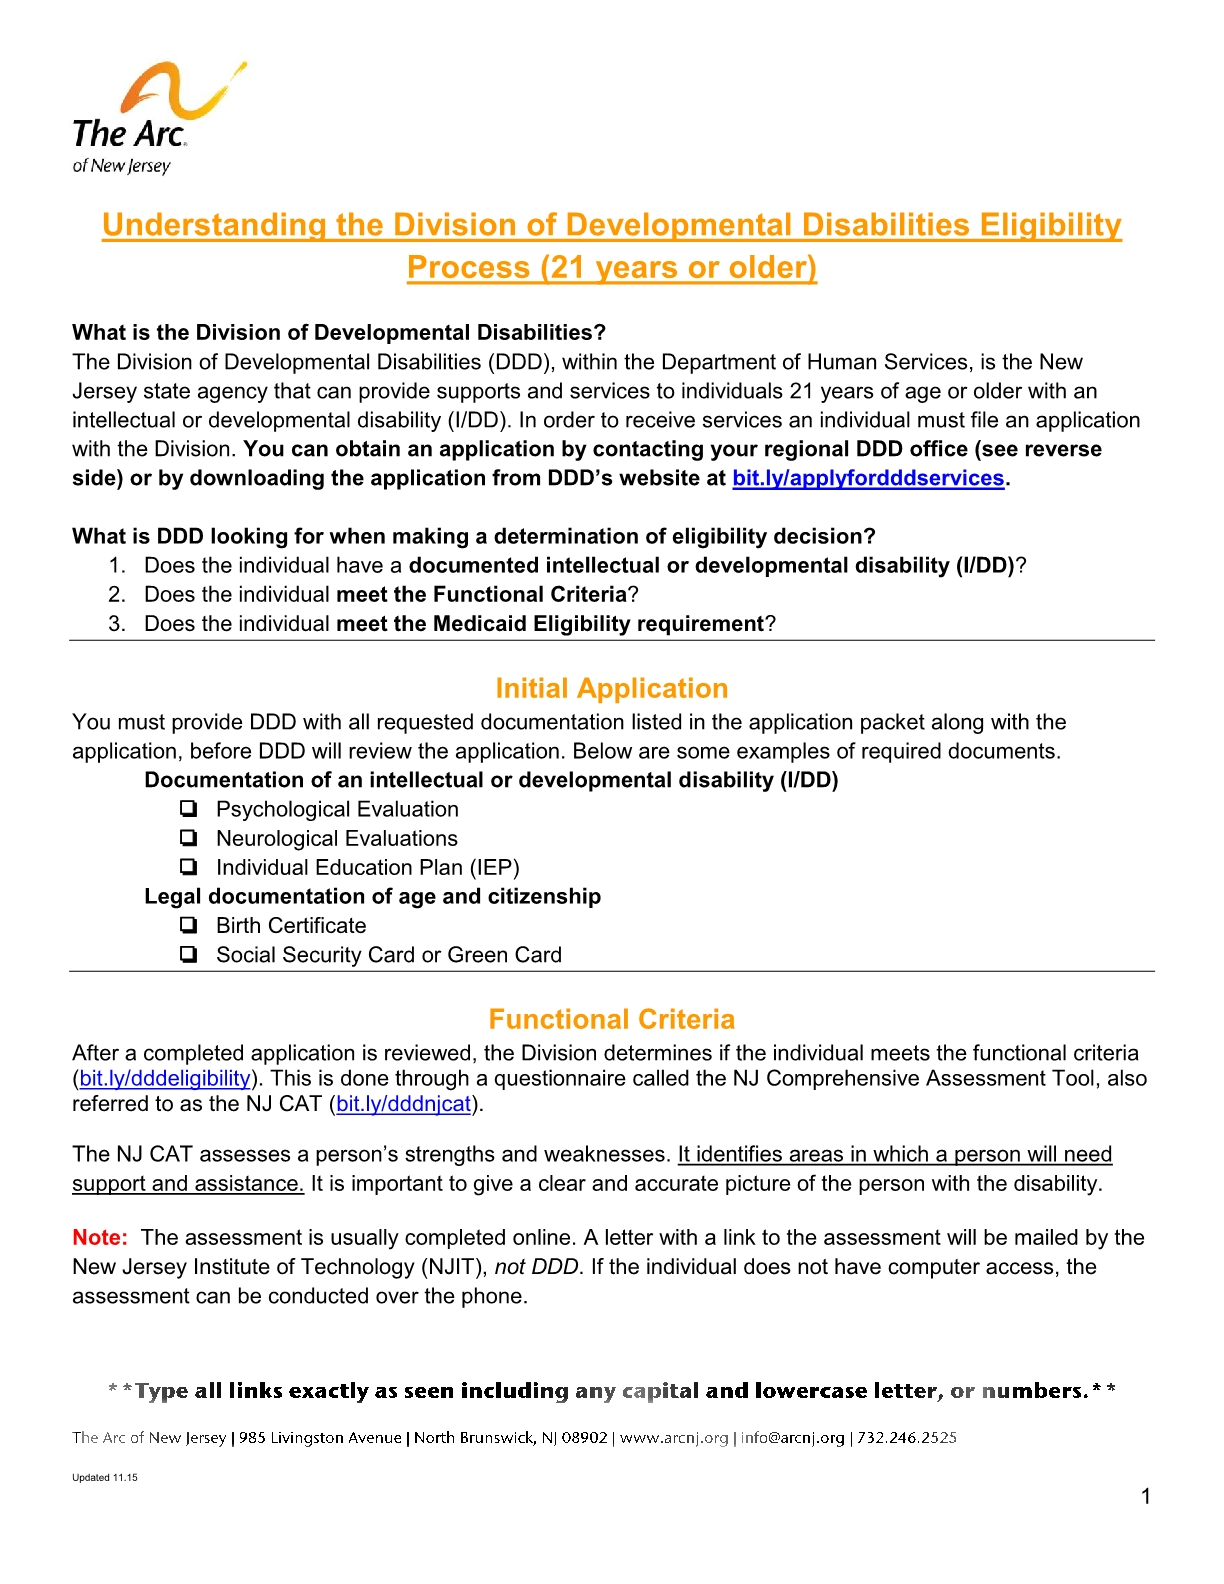 The arc of new jersey family institute resources fact sheets understanding ddds determination of eligibility process english aiddatafo Images